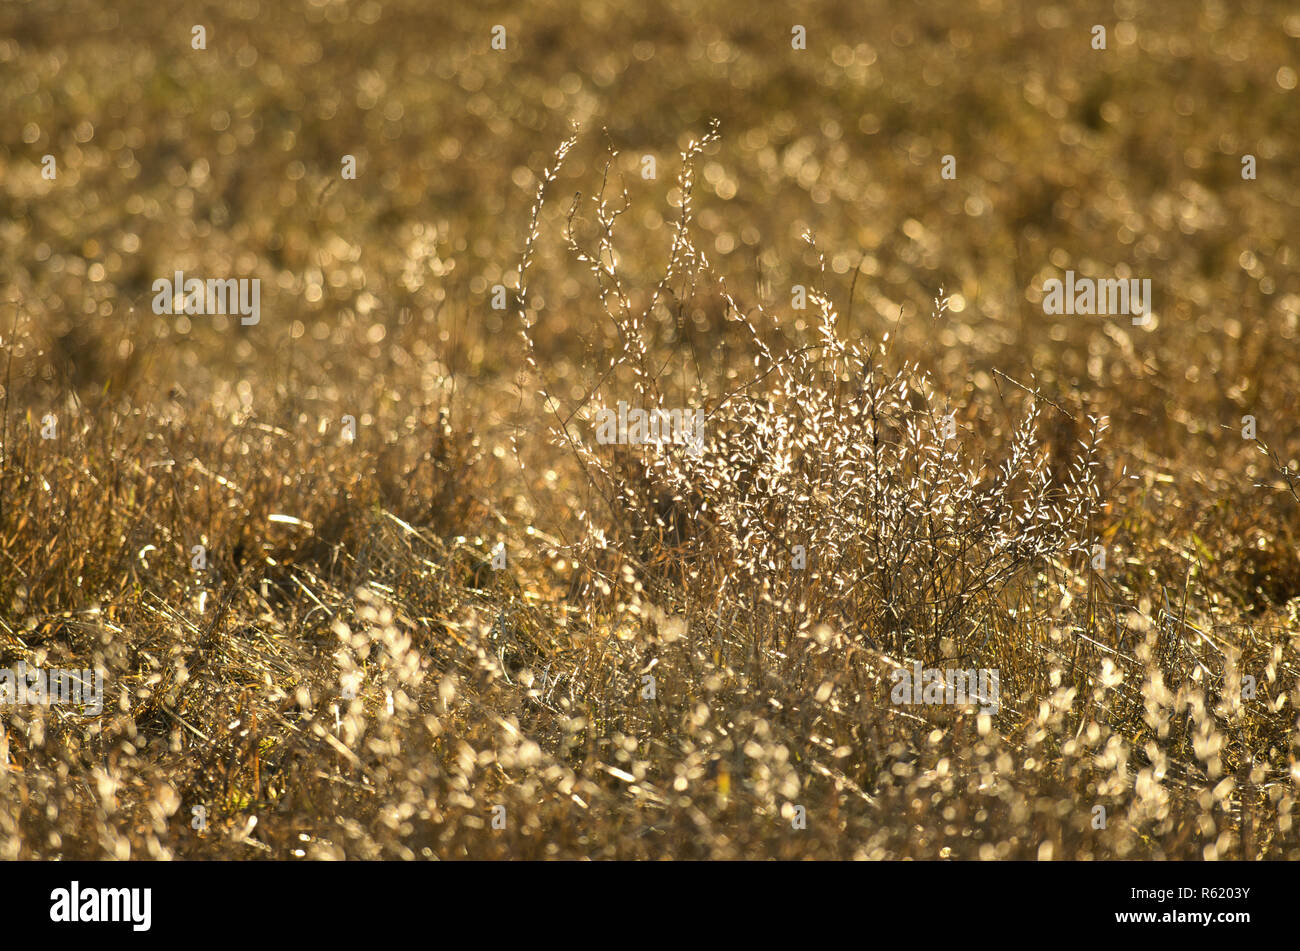 Icy glowing tips of dry stalks meadow herbs on the golden blurred background - Stock Image